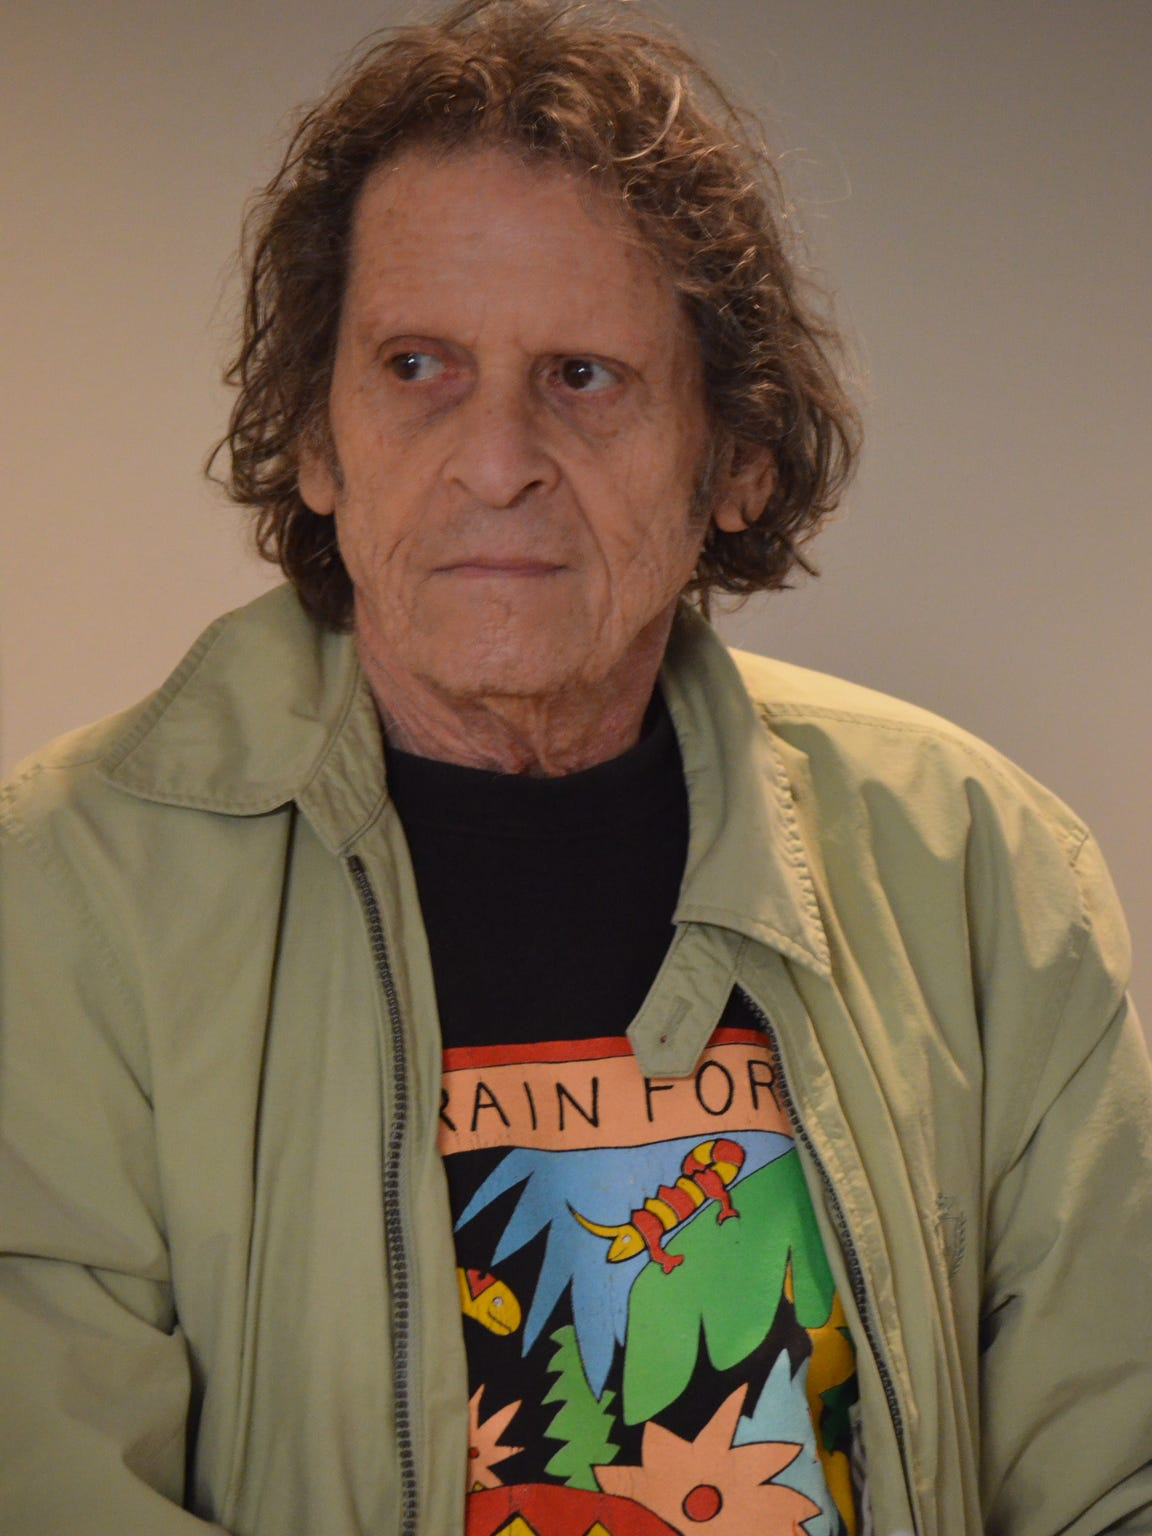 Paul Krassner, co-founder of the Yippies and publisher of The Realist magazine, was honored with a Lifetime Achievement Award by the Veterans for Peace Jon, Castro Chapter 19 in Cathedral City on Monday, Feb. 16, 2015.